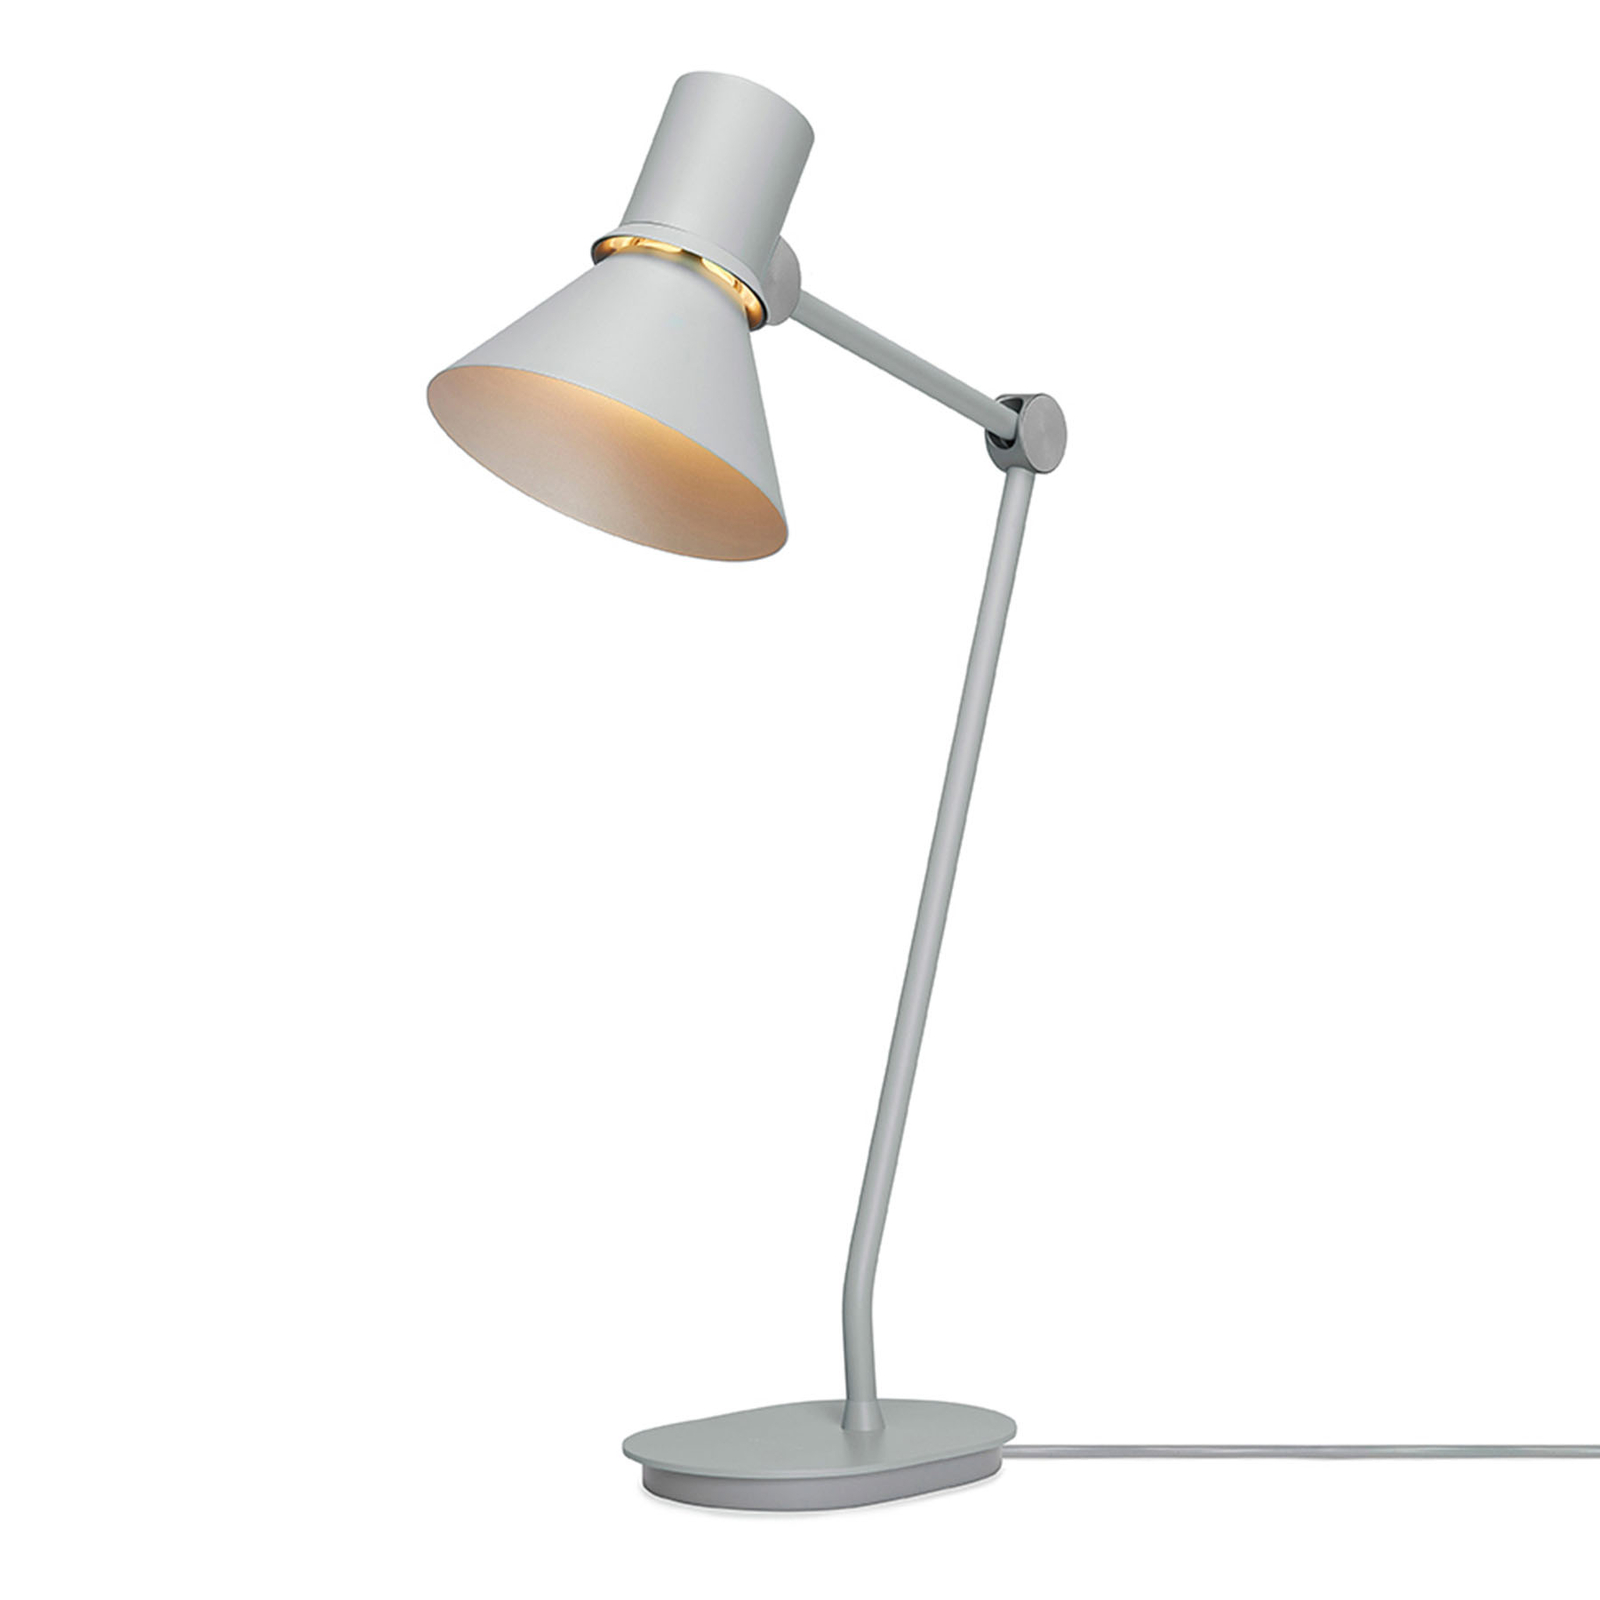 Anglepoise Type 80 lampe à poser, gris brume